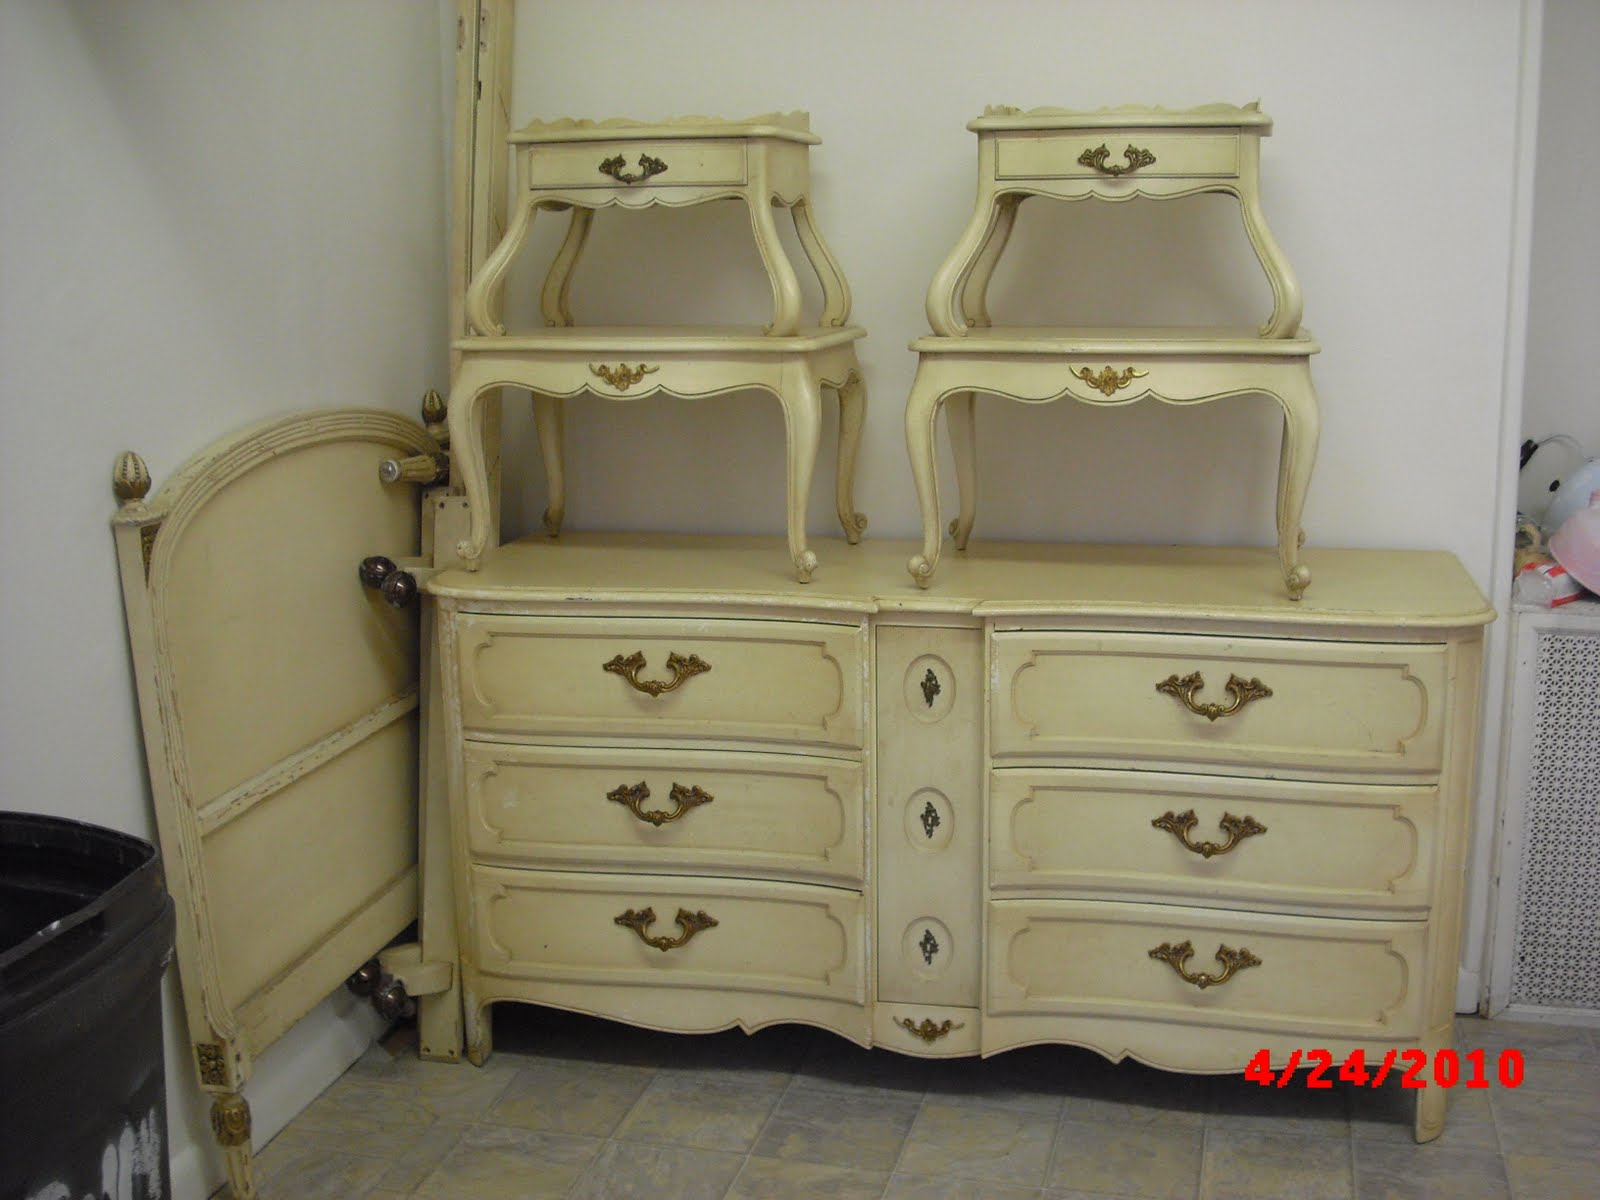 Remarkable Shabby Chic French Provincial Bedroom Furniture 1600 x 1200 · 136 kB · jpeg